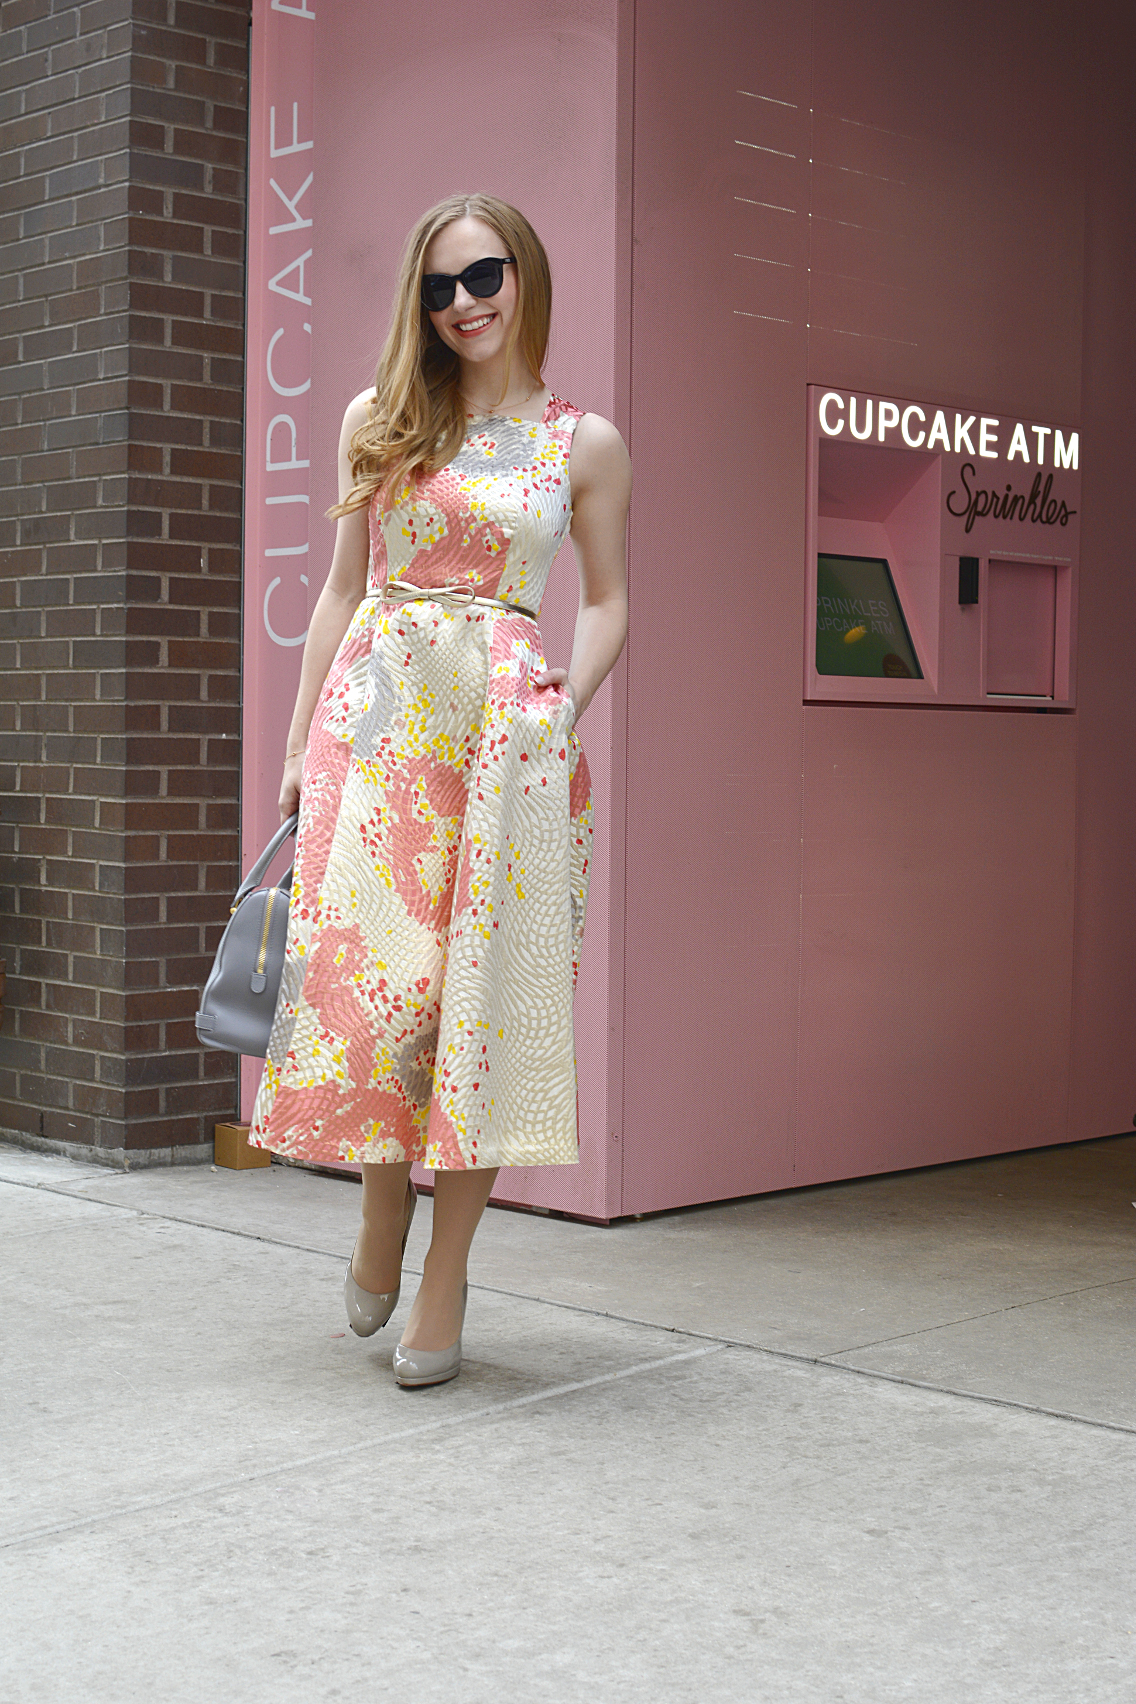 LK Bennett Chicago Gardo Jacquard Dress Sprinkles Cupcakes 2